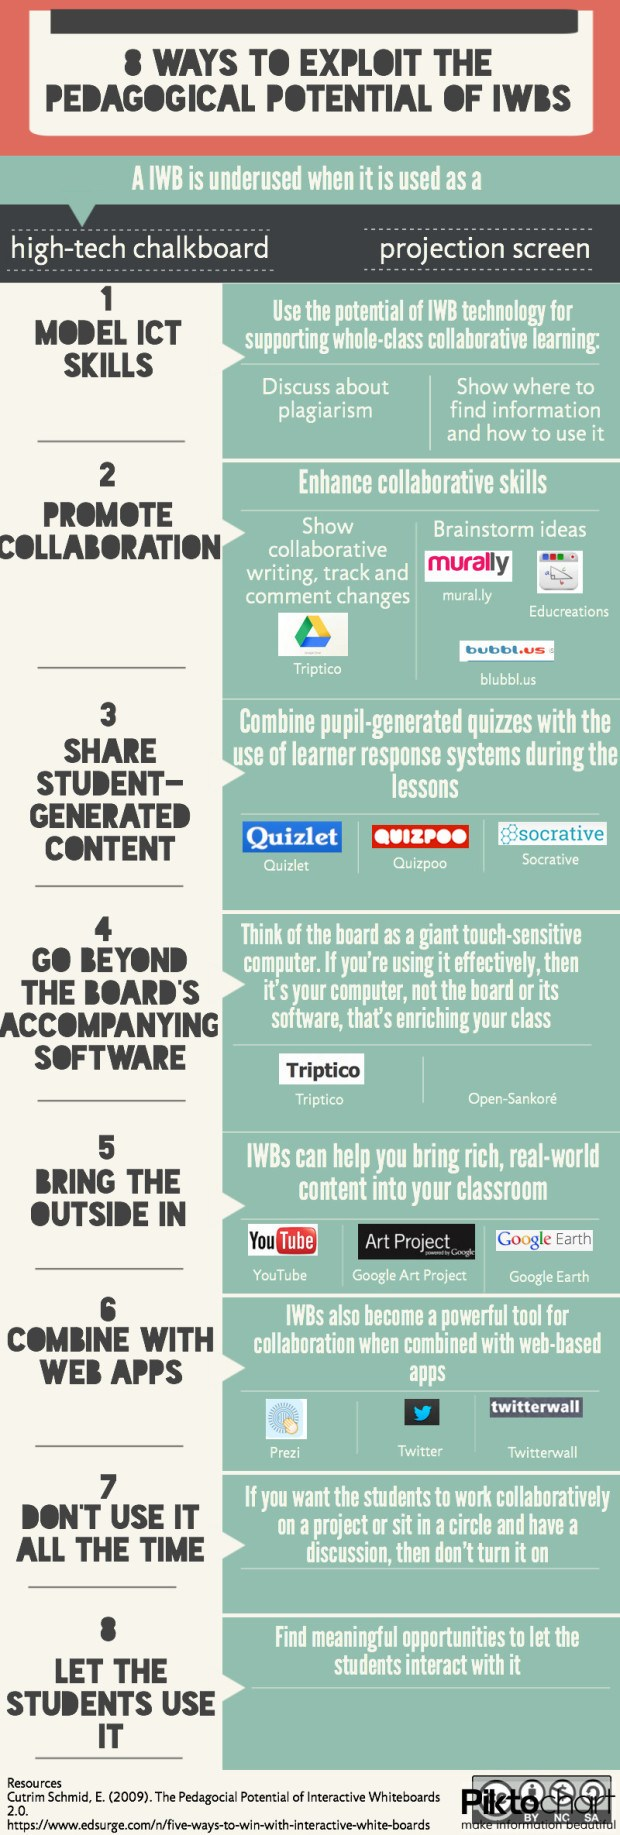 Exploiting the Pedacogical Potential of Interactive Whiteboards Infographic